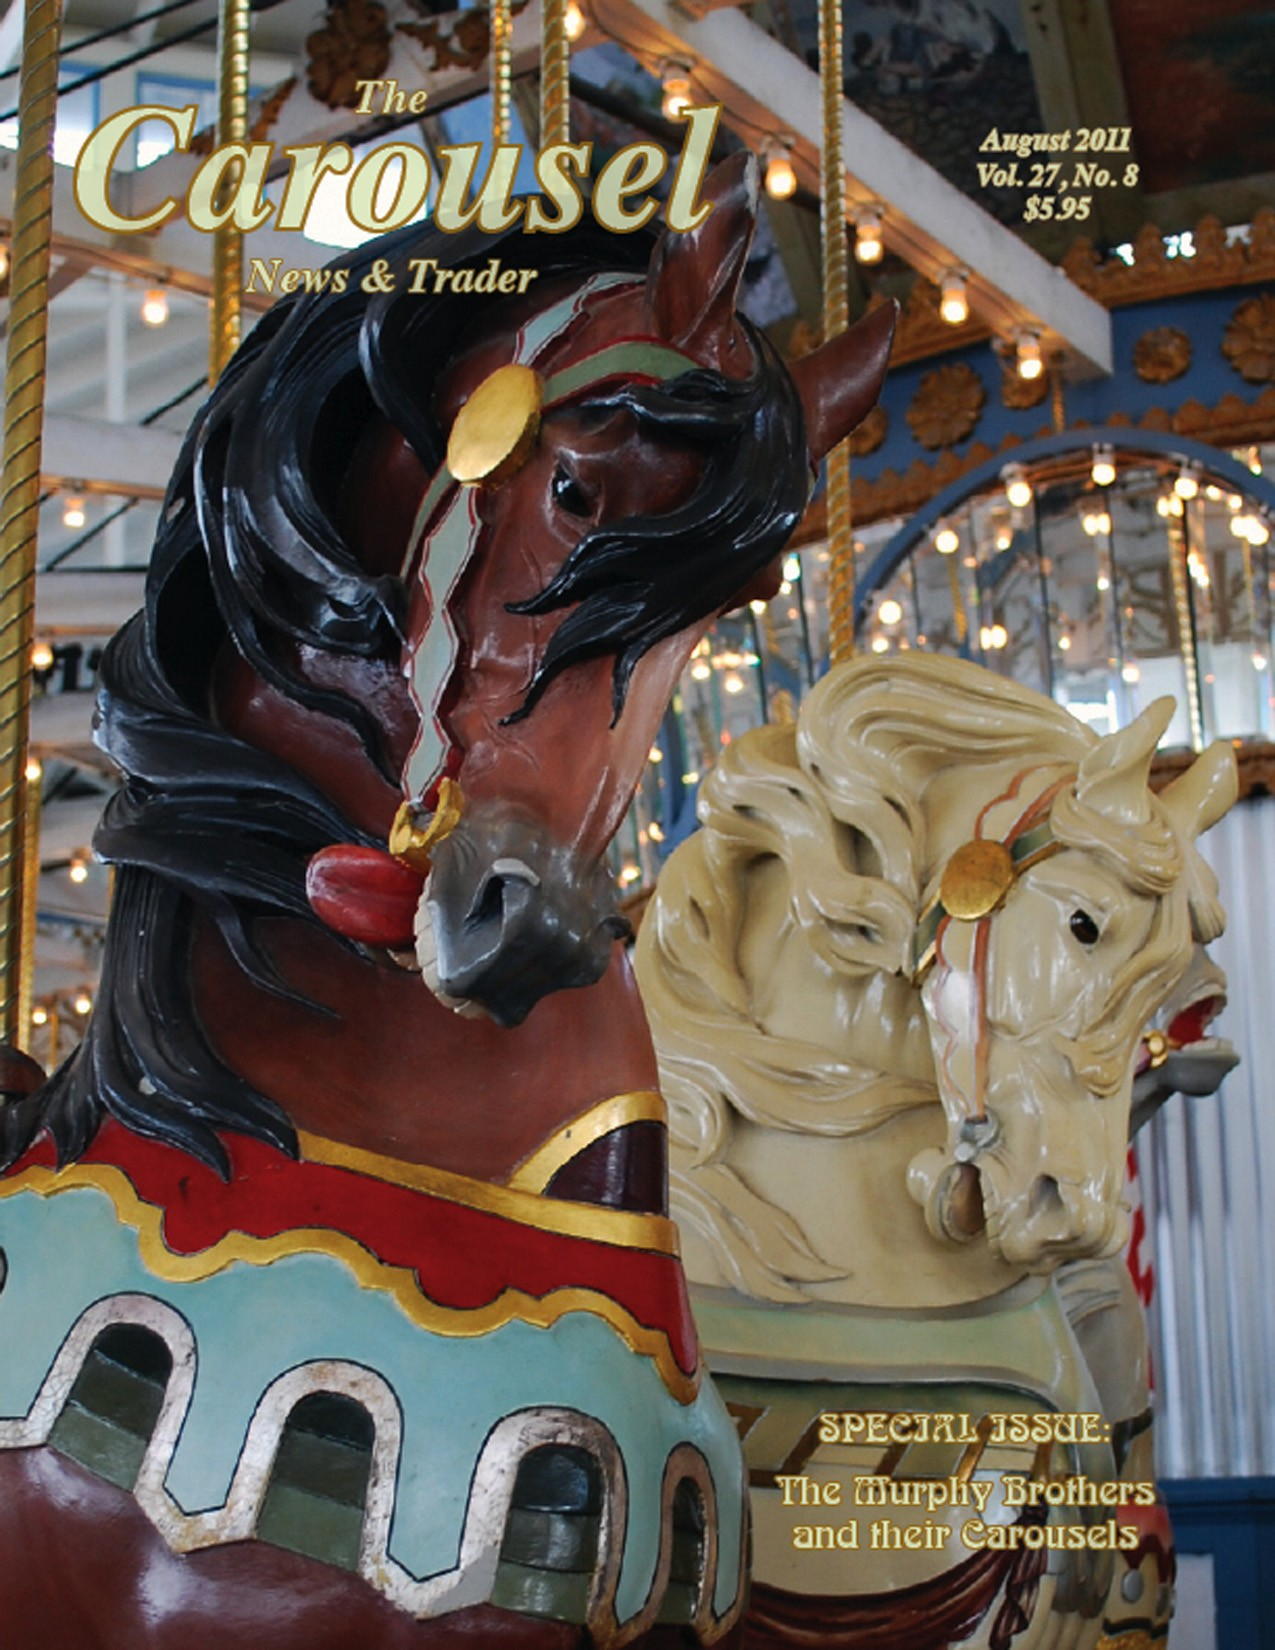 Carousel-news-cover-8-Murphy-Brothers-carousel-builders-history-August-2011